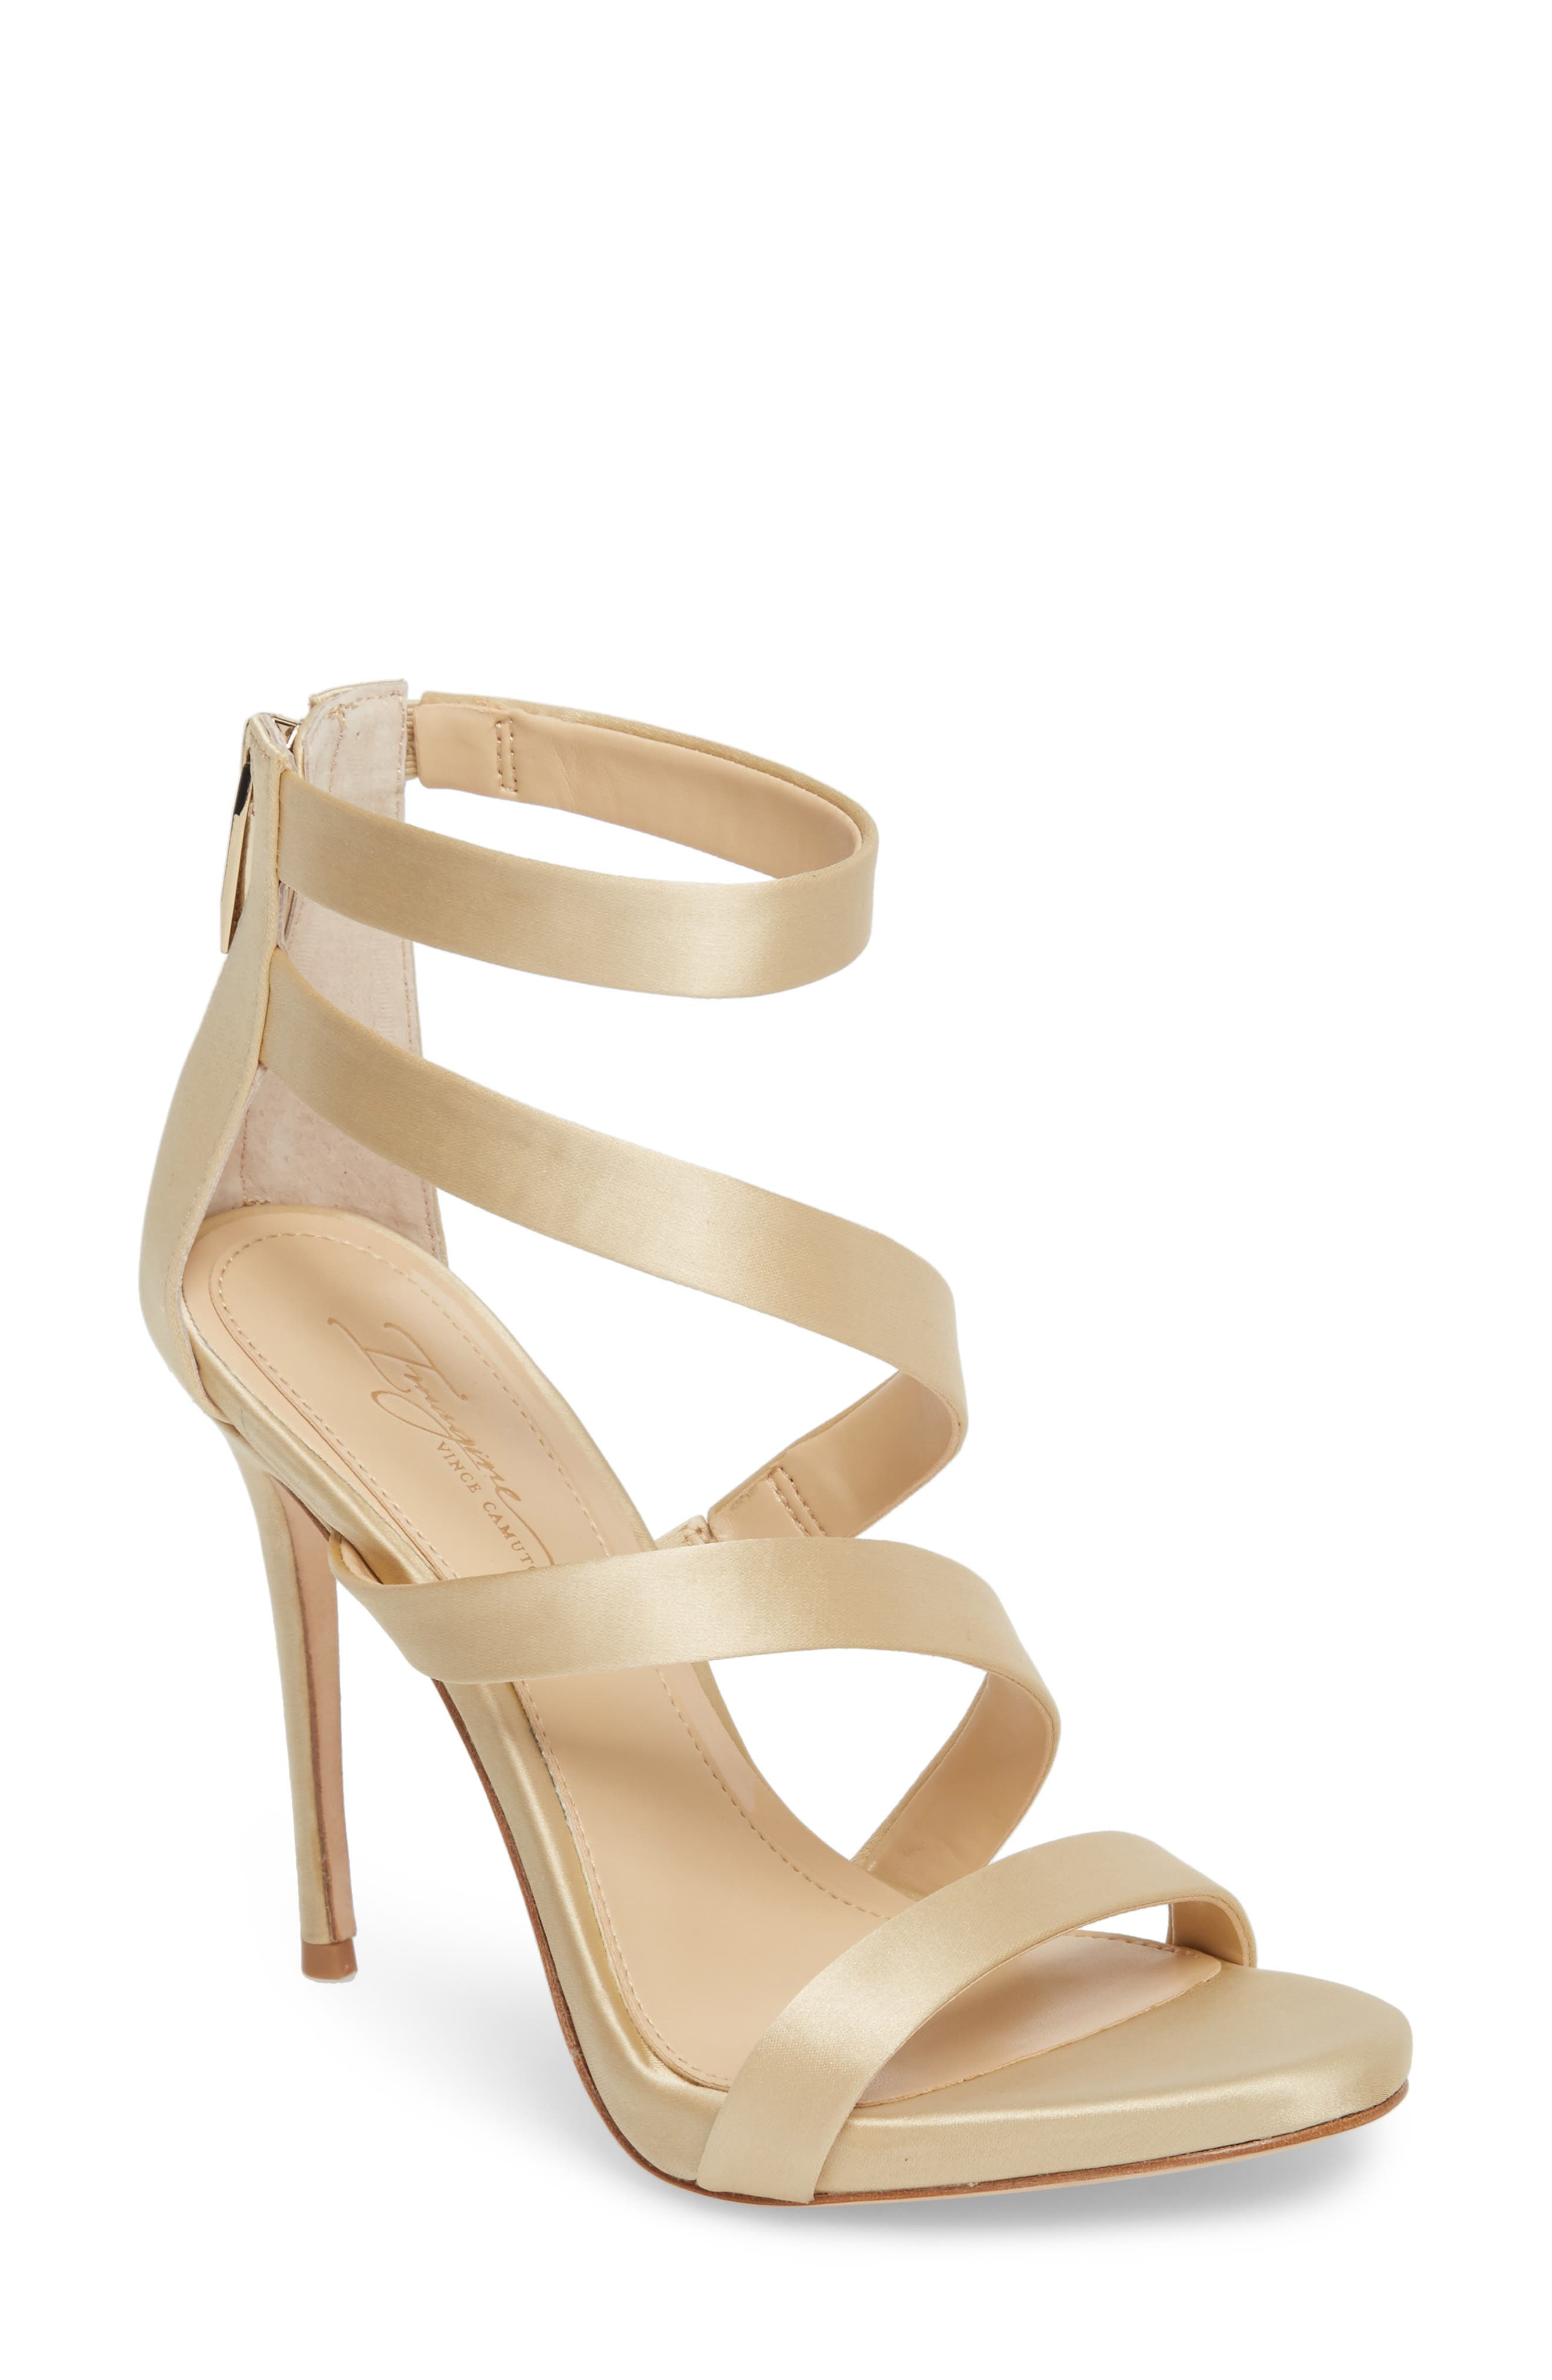 Imagine Vince Camuto Dalles Tall Strappy Sandal